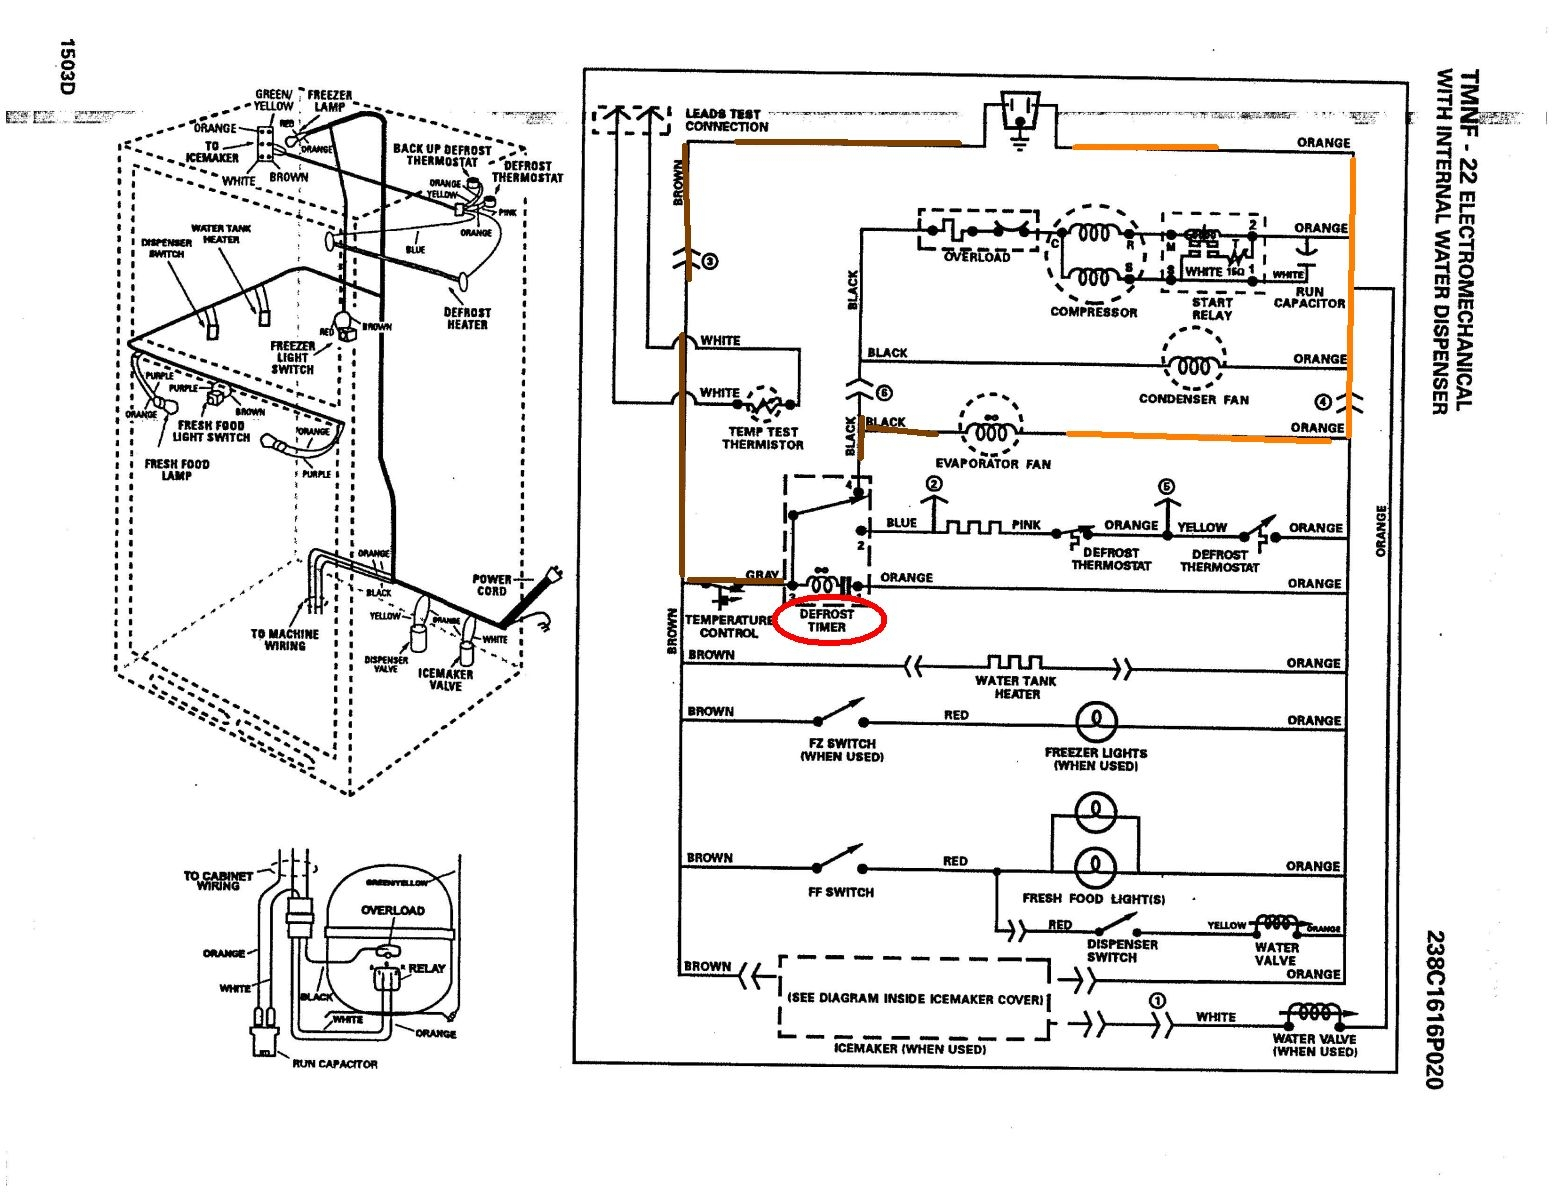 Hotpoint Wiring Diagrams | Wiring Diagram on